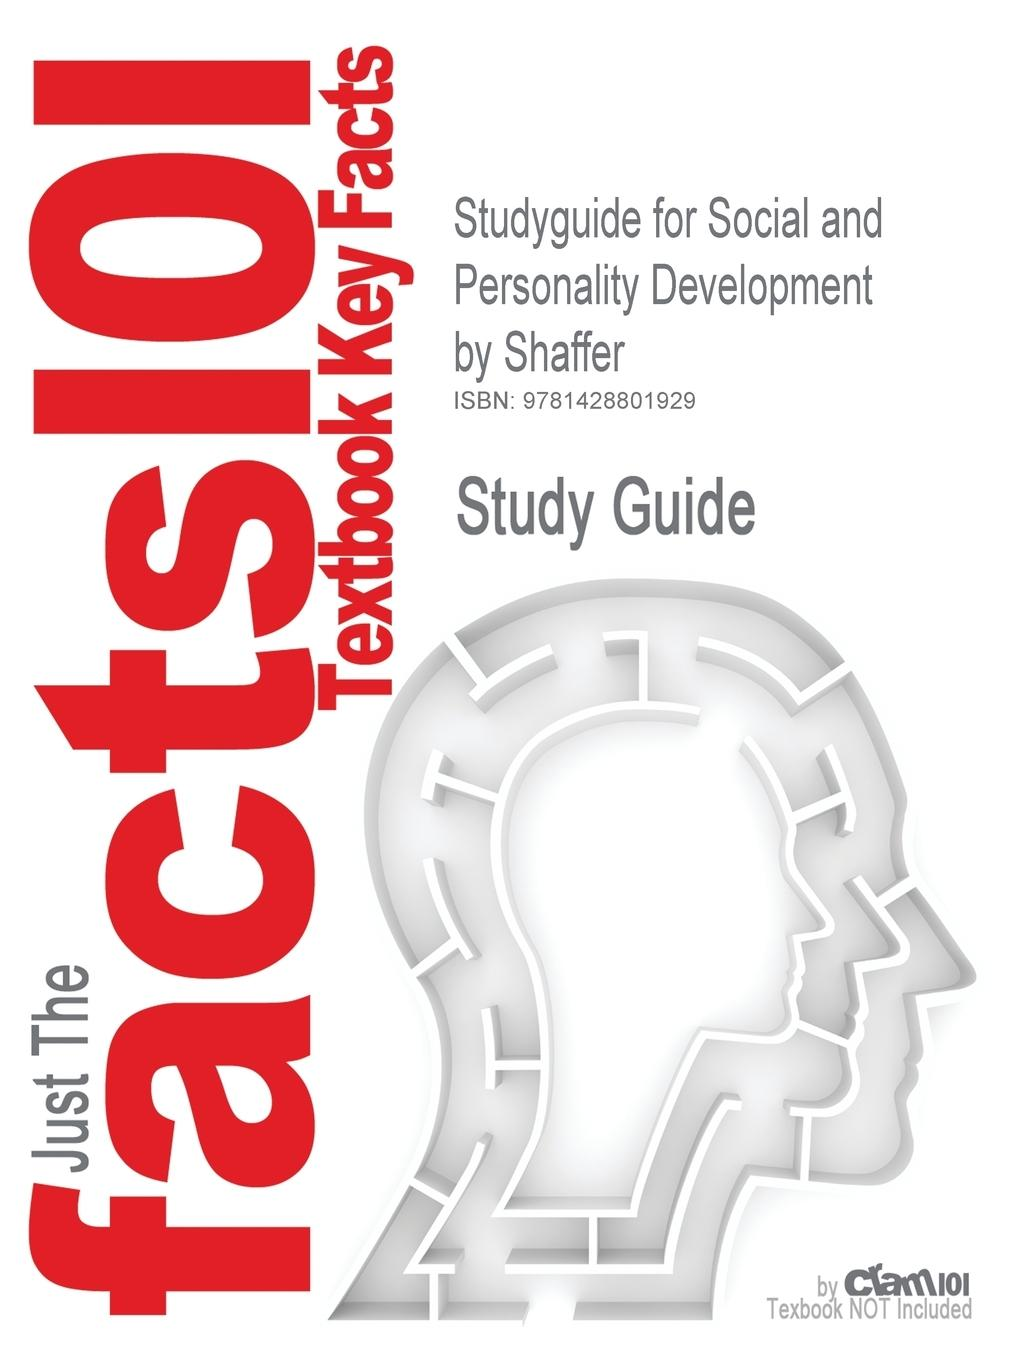 Studyguide for Social and Personality Development by Shaffer, IS